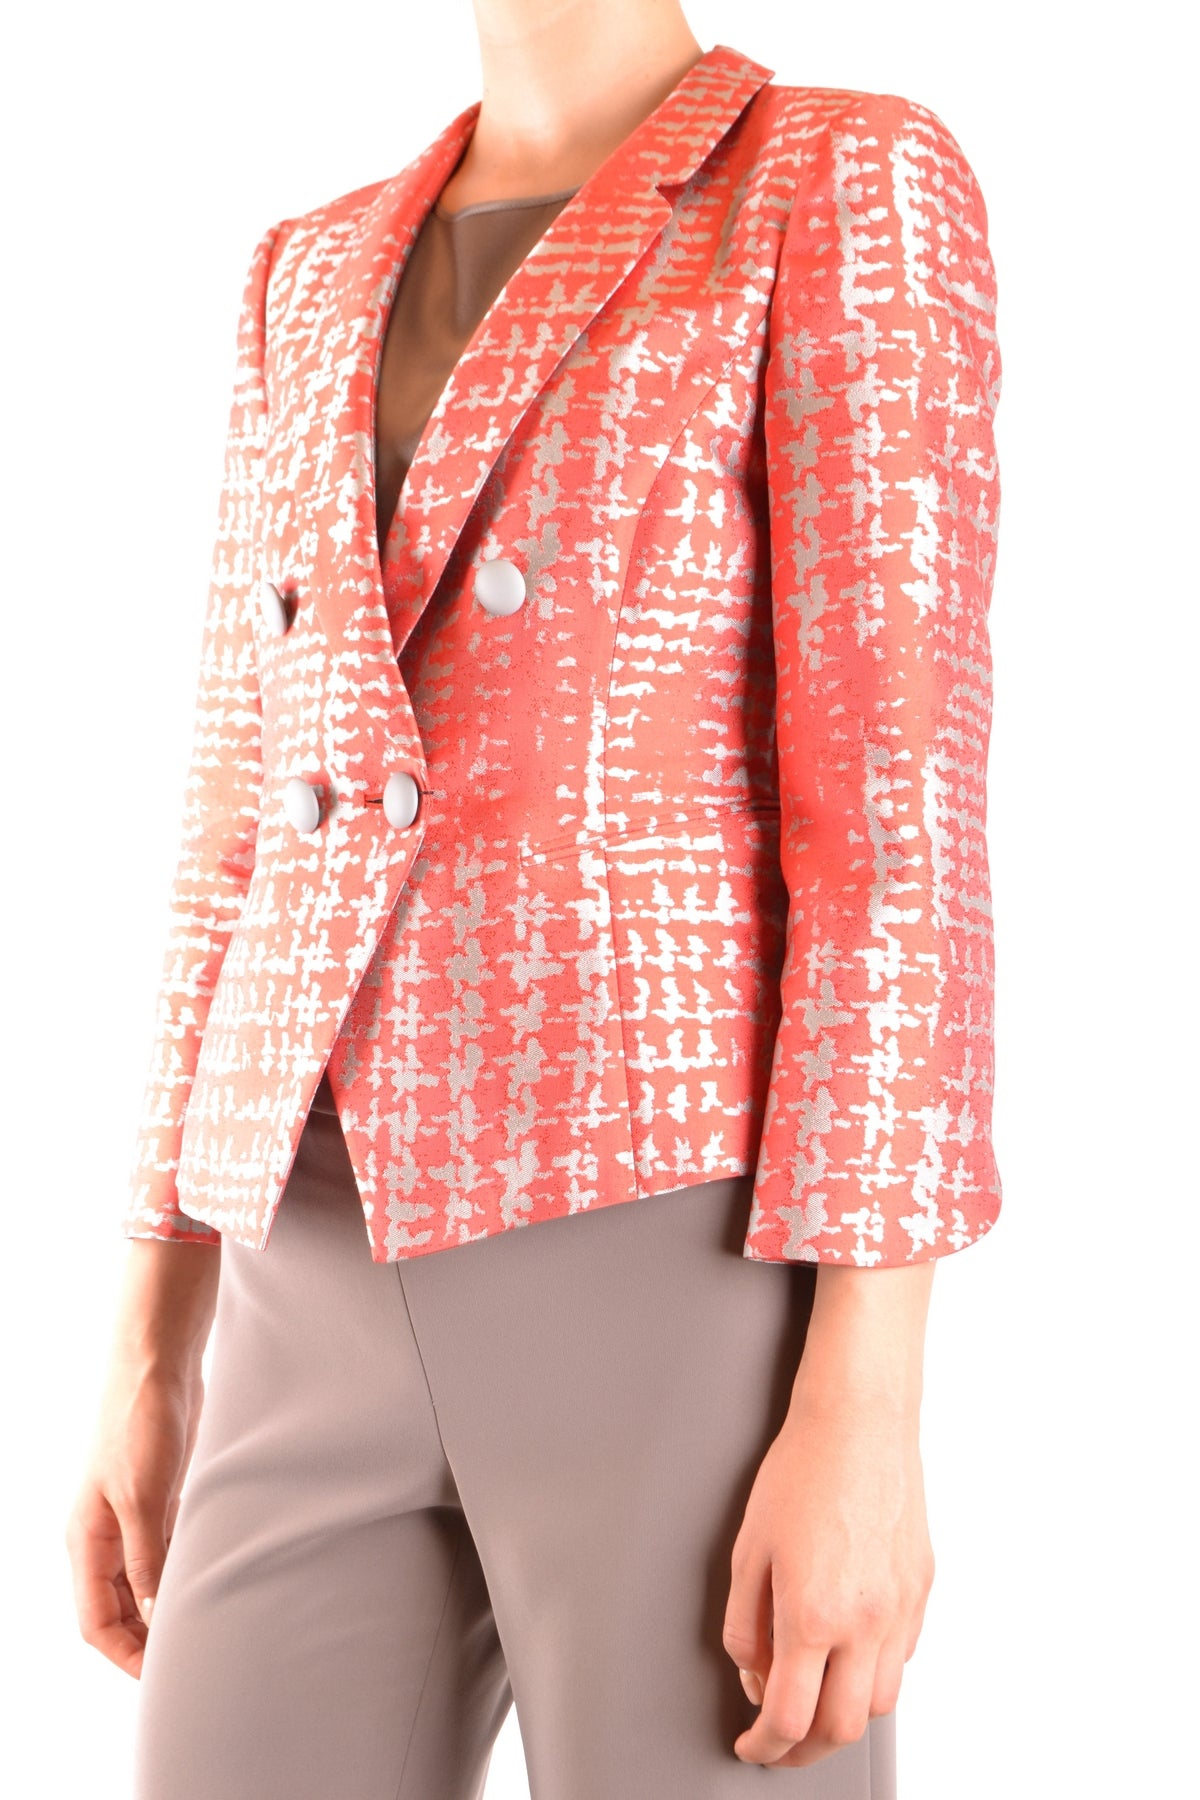 Jacket Armani Collezioni-Jacket - WOMAN-Product Details Season: Spring / SummerTerms: New With LabelMain Color: CoralGender: WomanMade In: ItalyManufacturer Part Number: Vmg32T Vm103Size: ItYear: 2018Clothing Type: JacketComposition: Polyester 70%, Silk 30%-Keyomi-Sook